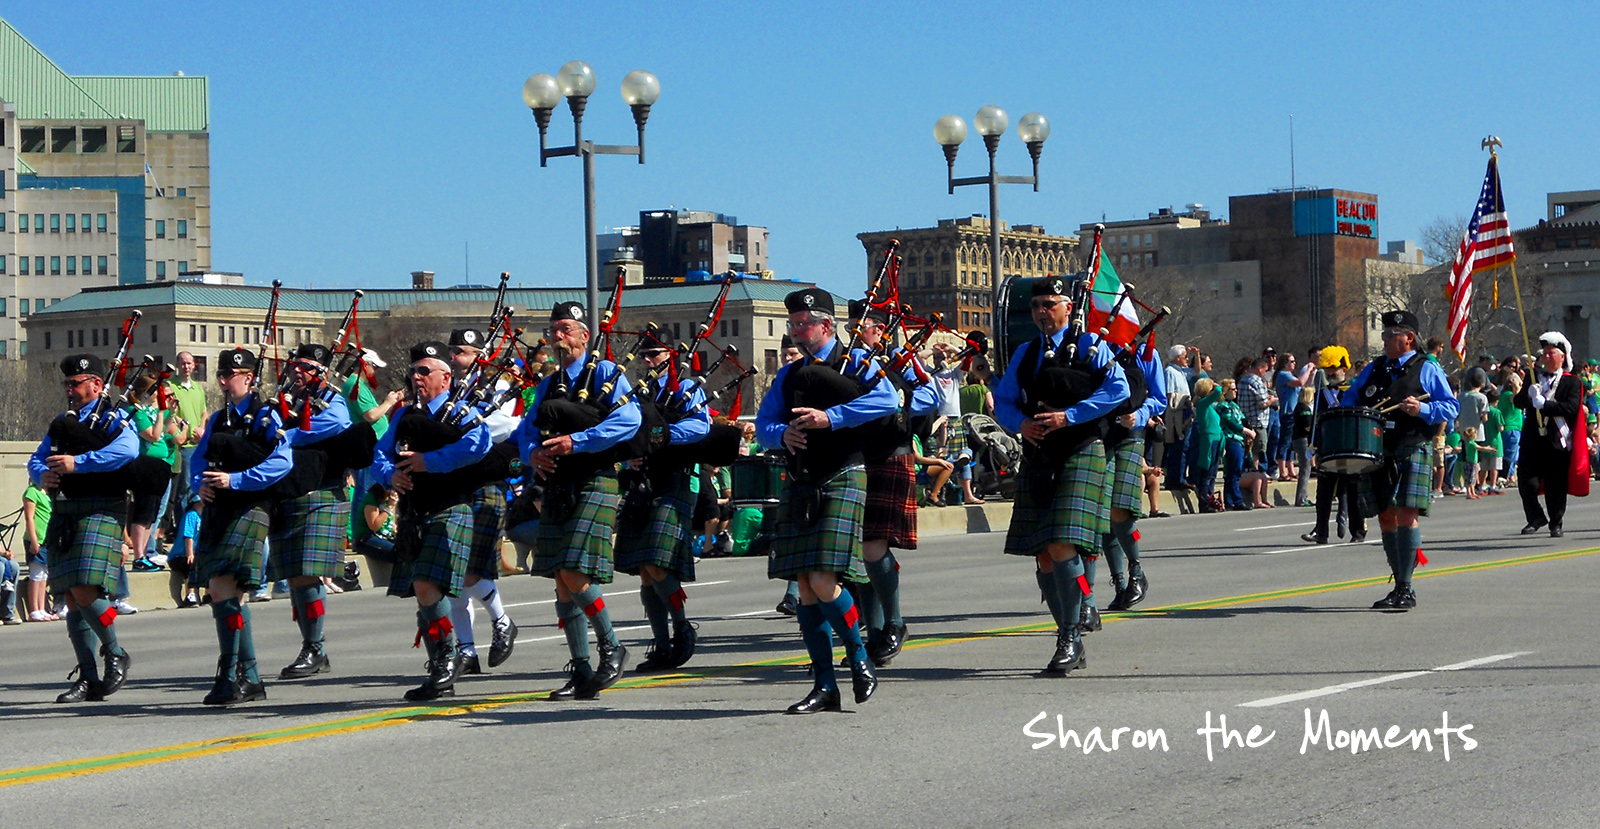 Hodgepodge Wednesday St Patricks Day with the Shamrock Club of Columbus Parade|Sharon the Moments blog